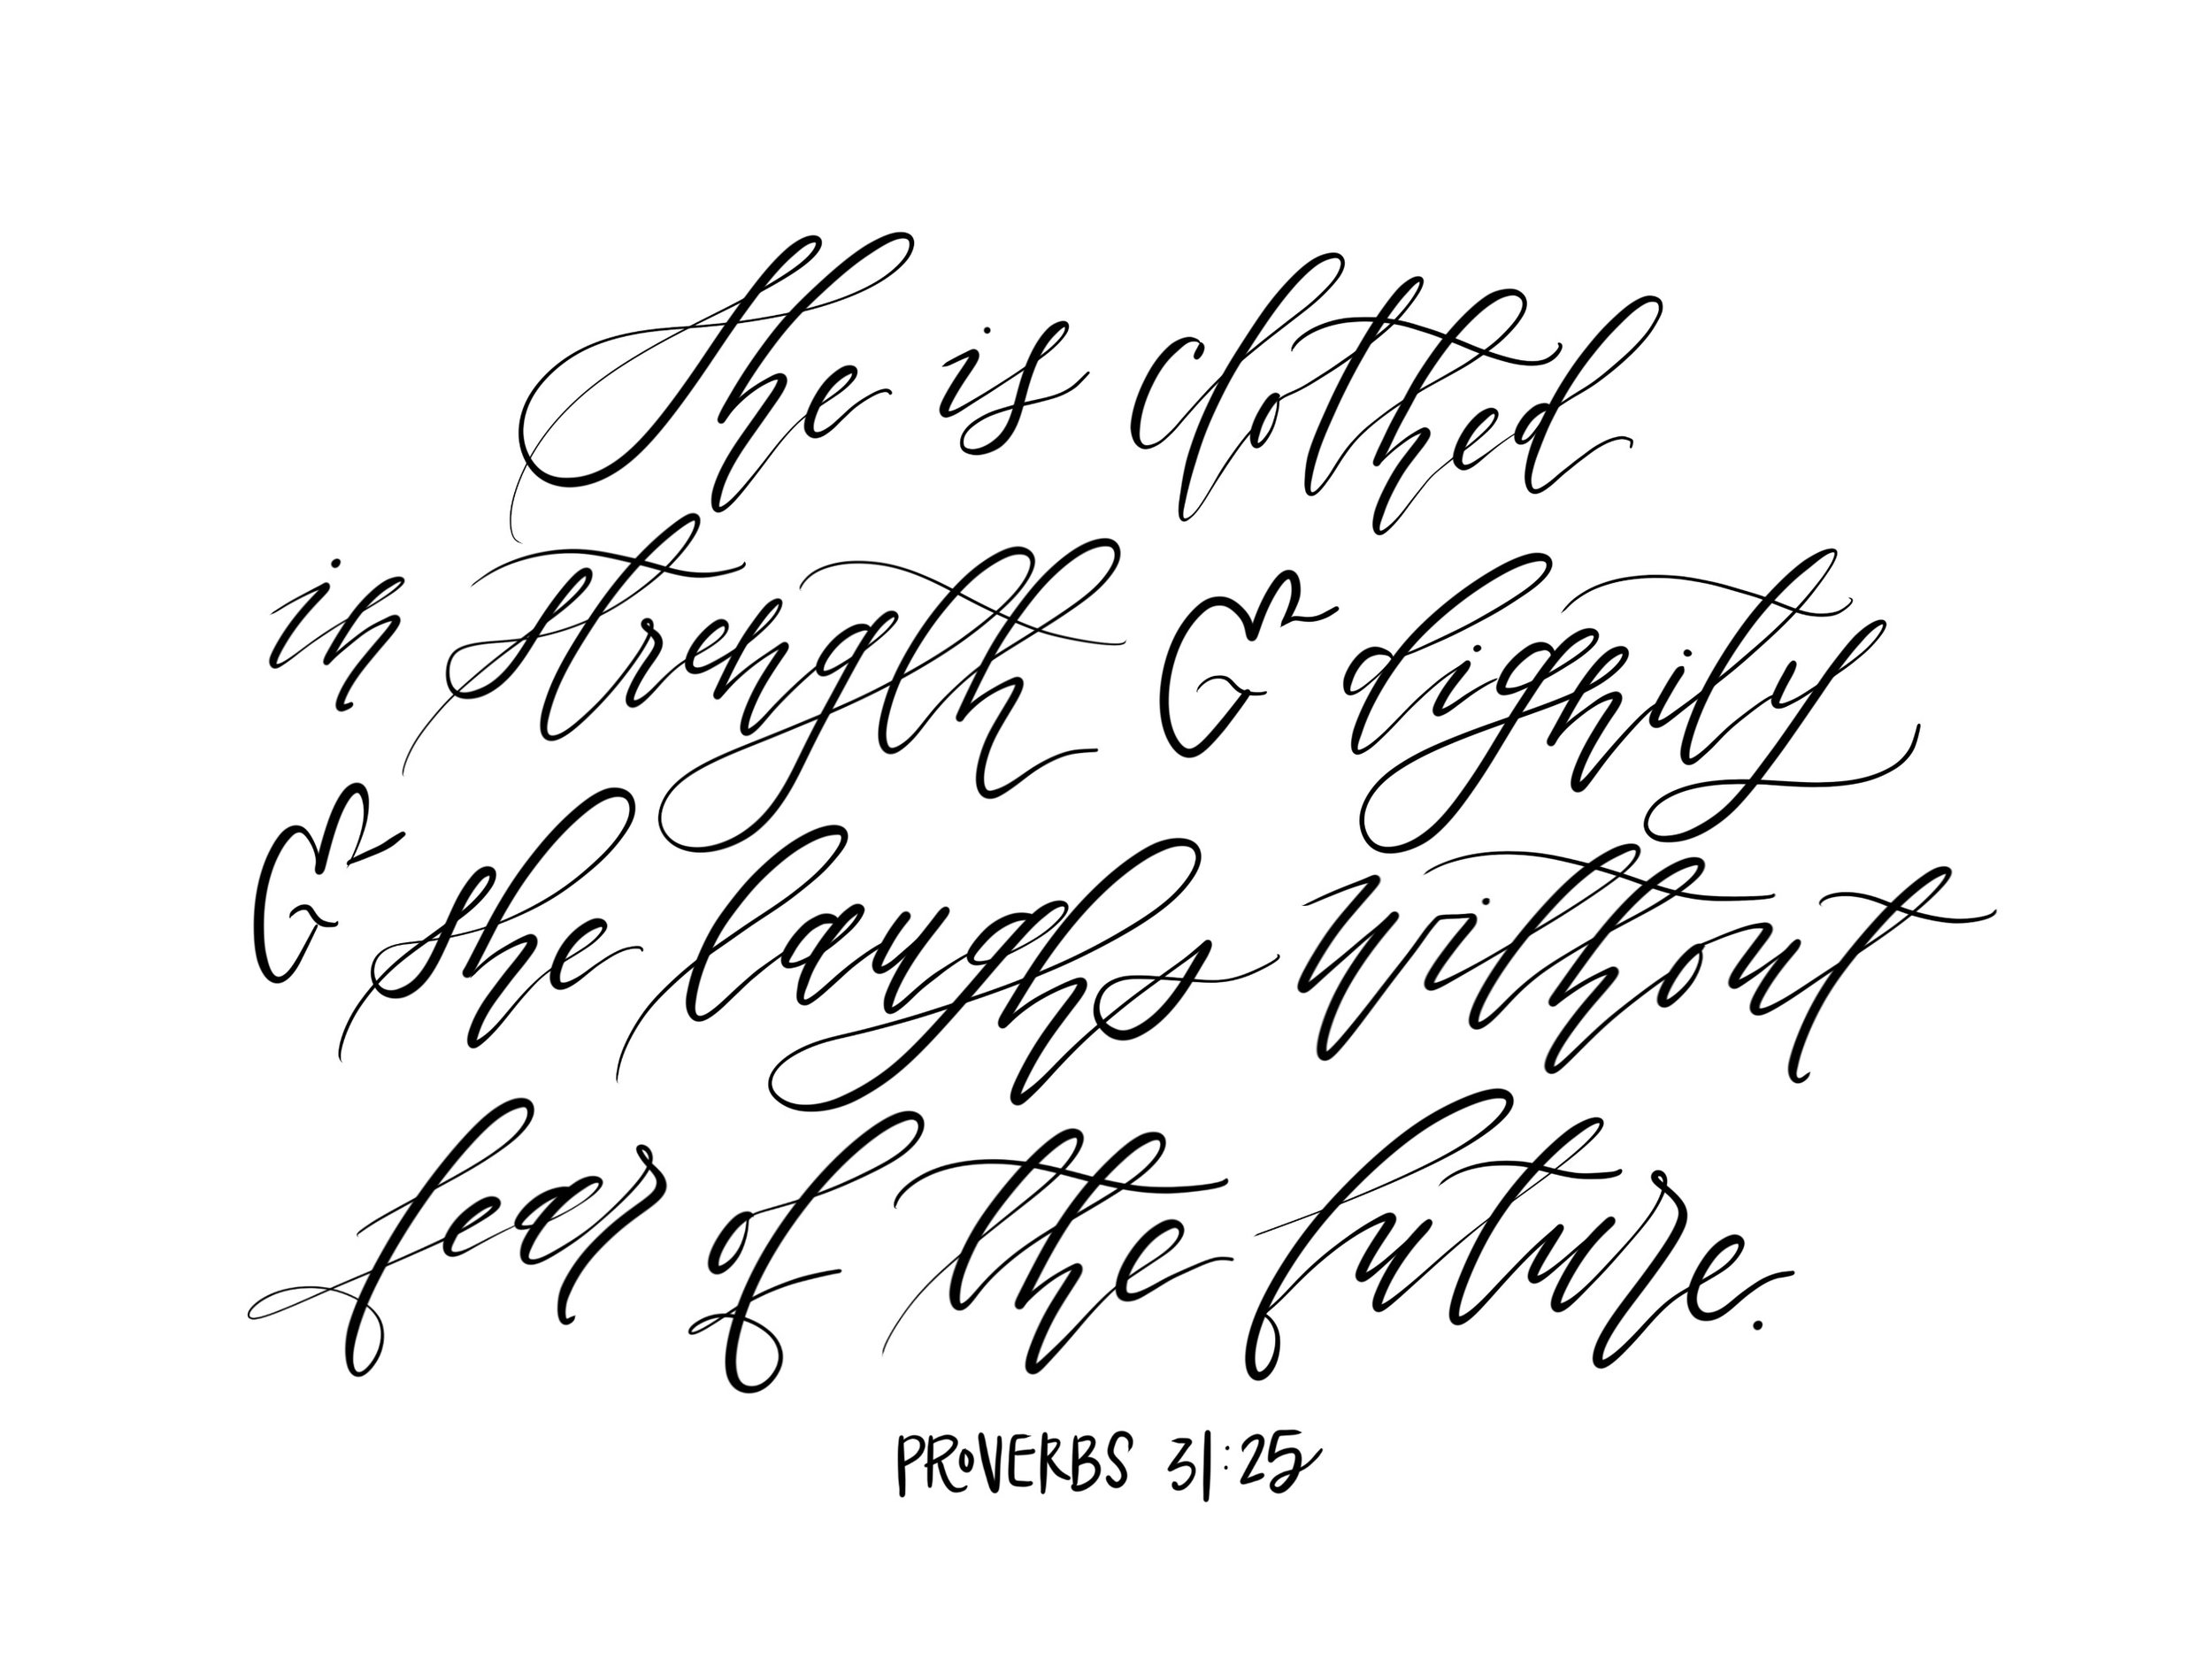 Connar Joy Calligraphy Proverbs 31:25